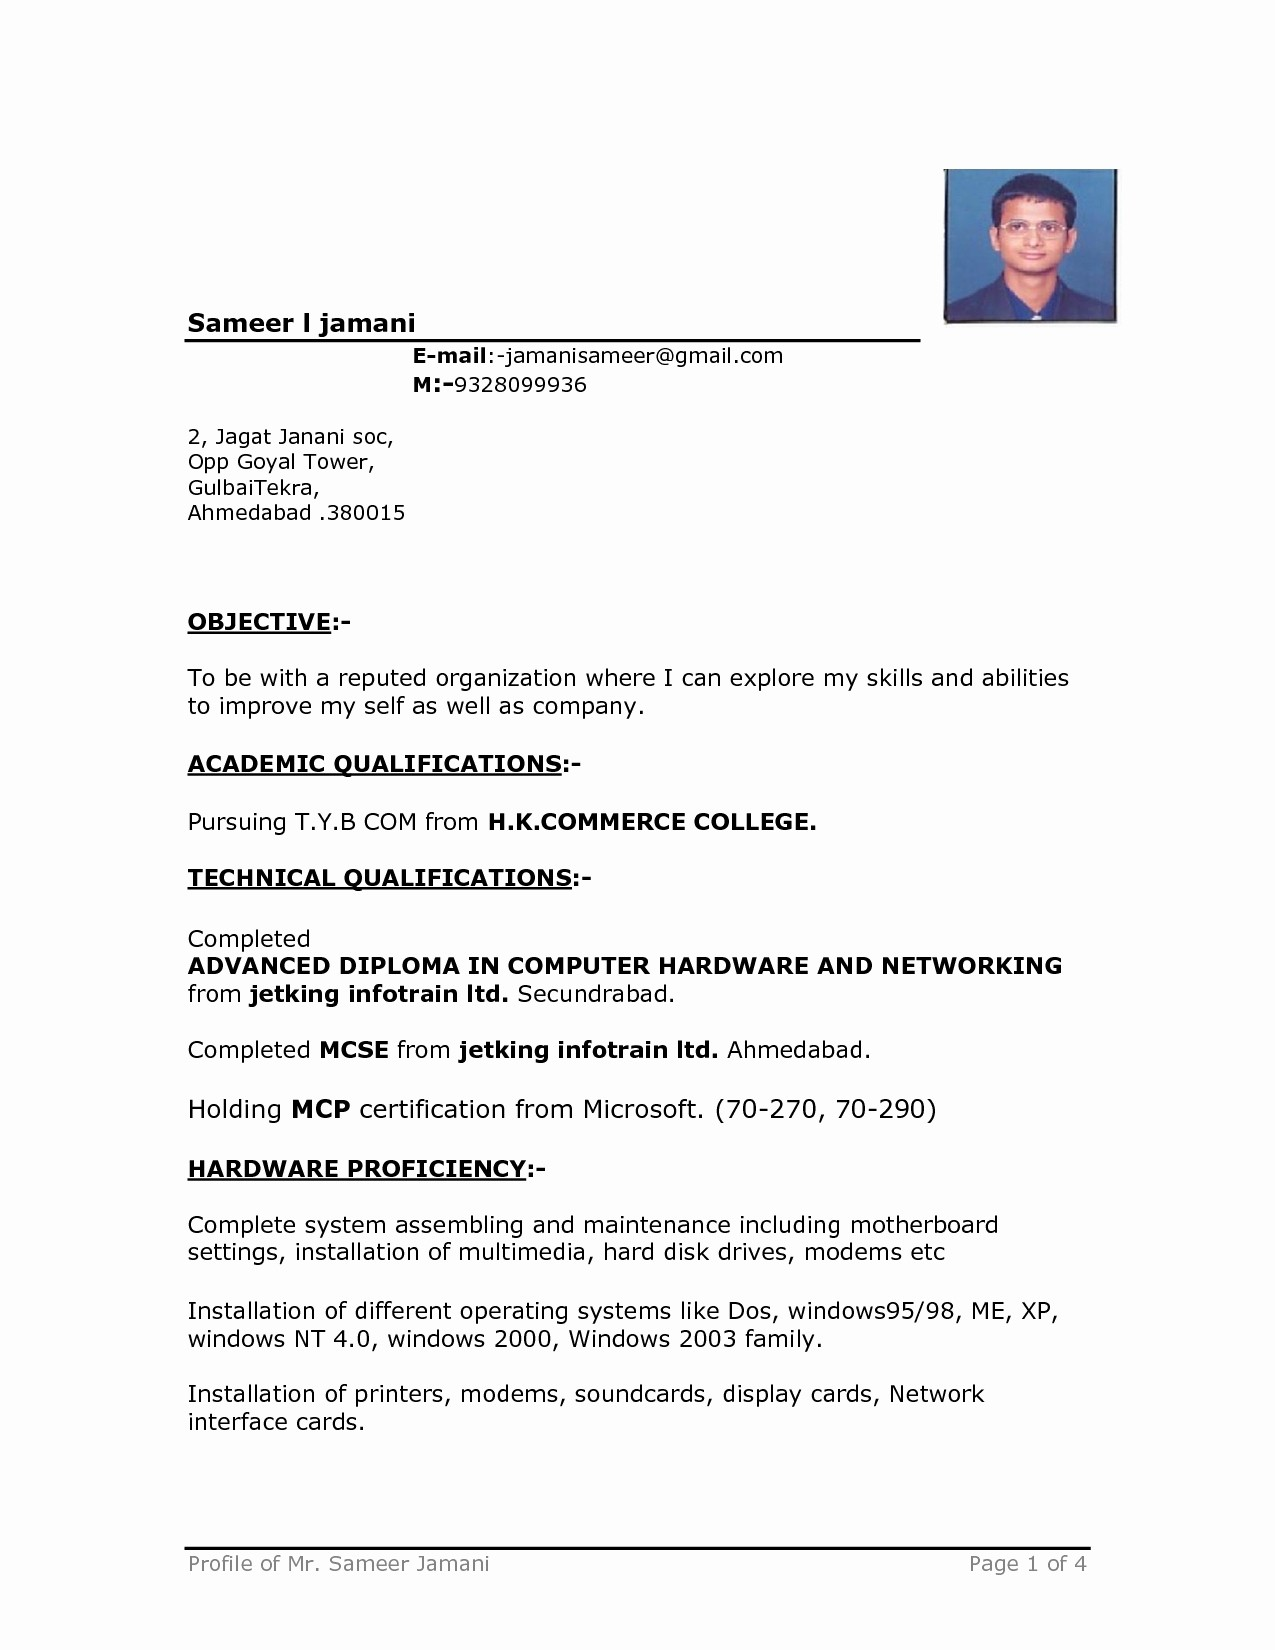 Ms Word Template for Resume Luxury Resume Template Microsoft Word 2017